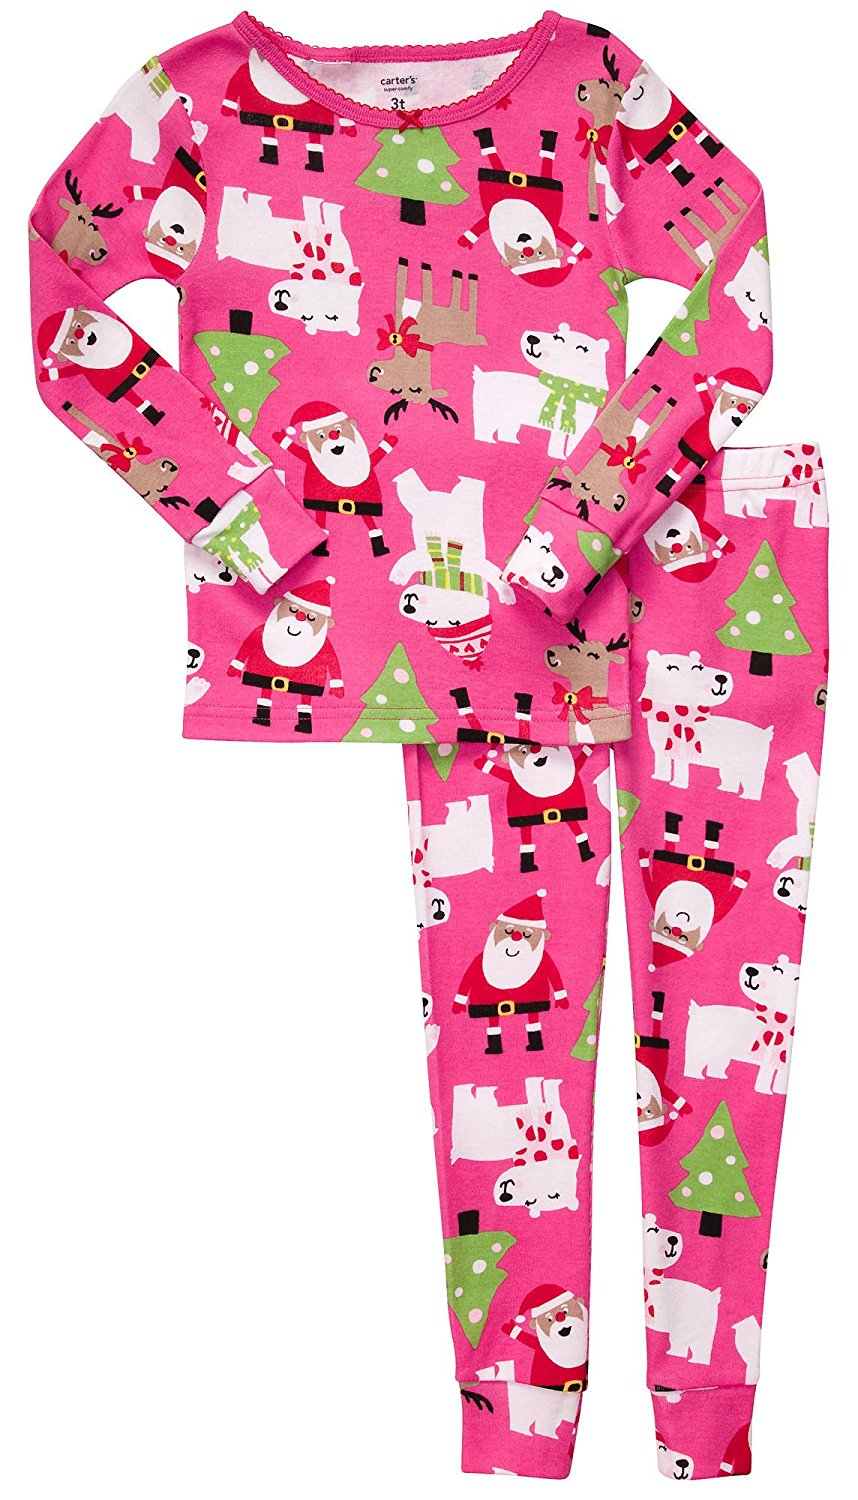 Kids Christmas Pajamas | All the Best Styles for 2013 Kids Christmas ...